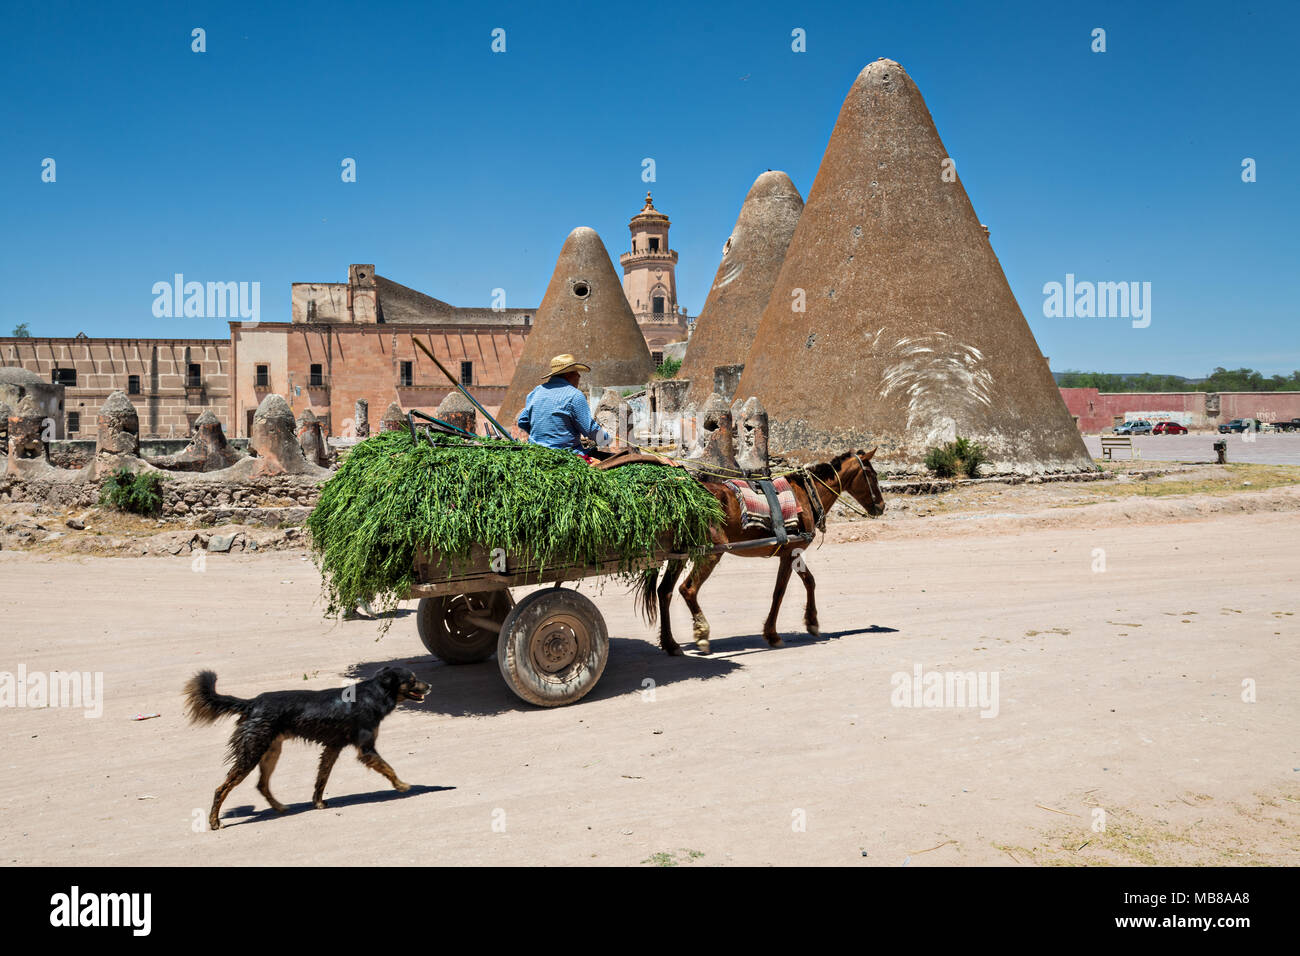 A horse cart passes the pyramid shaped granaries and the front towers of the Hacienda de Jaral de Berrio in Jaral de Berrios, Guanajuato, Mexico. The abandoned Jaral de Berrio hacienda was once the largest in Mexico and housed over 6,000 people on the property and is credited with creating Mescal. - Stock Image